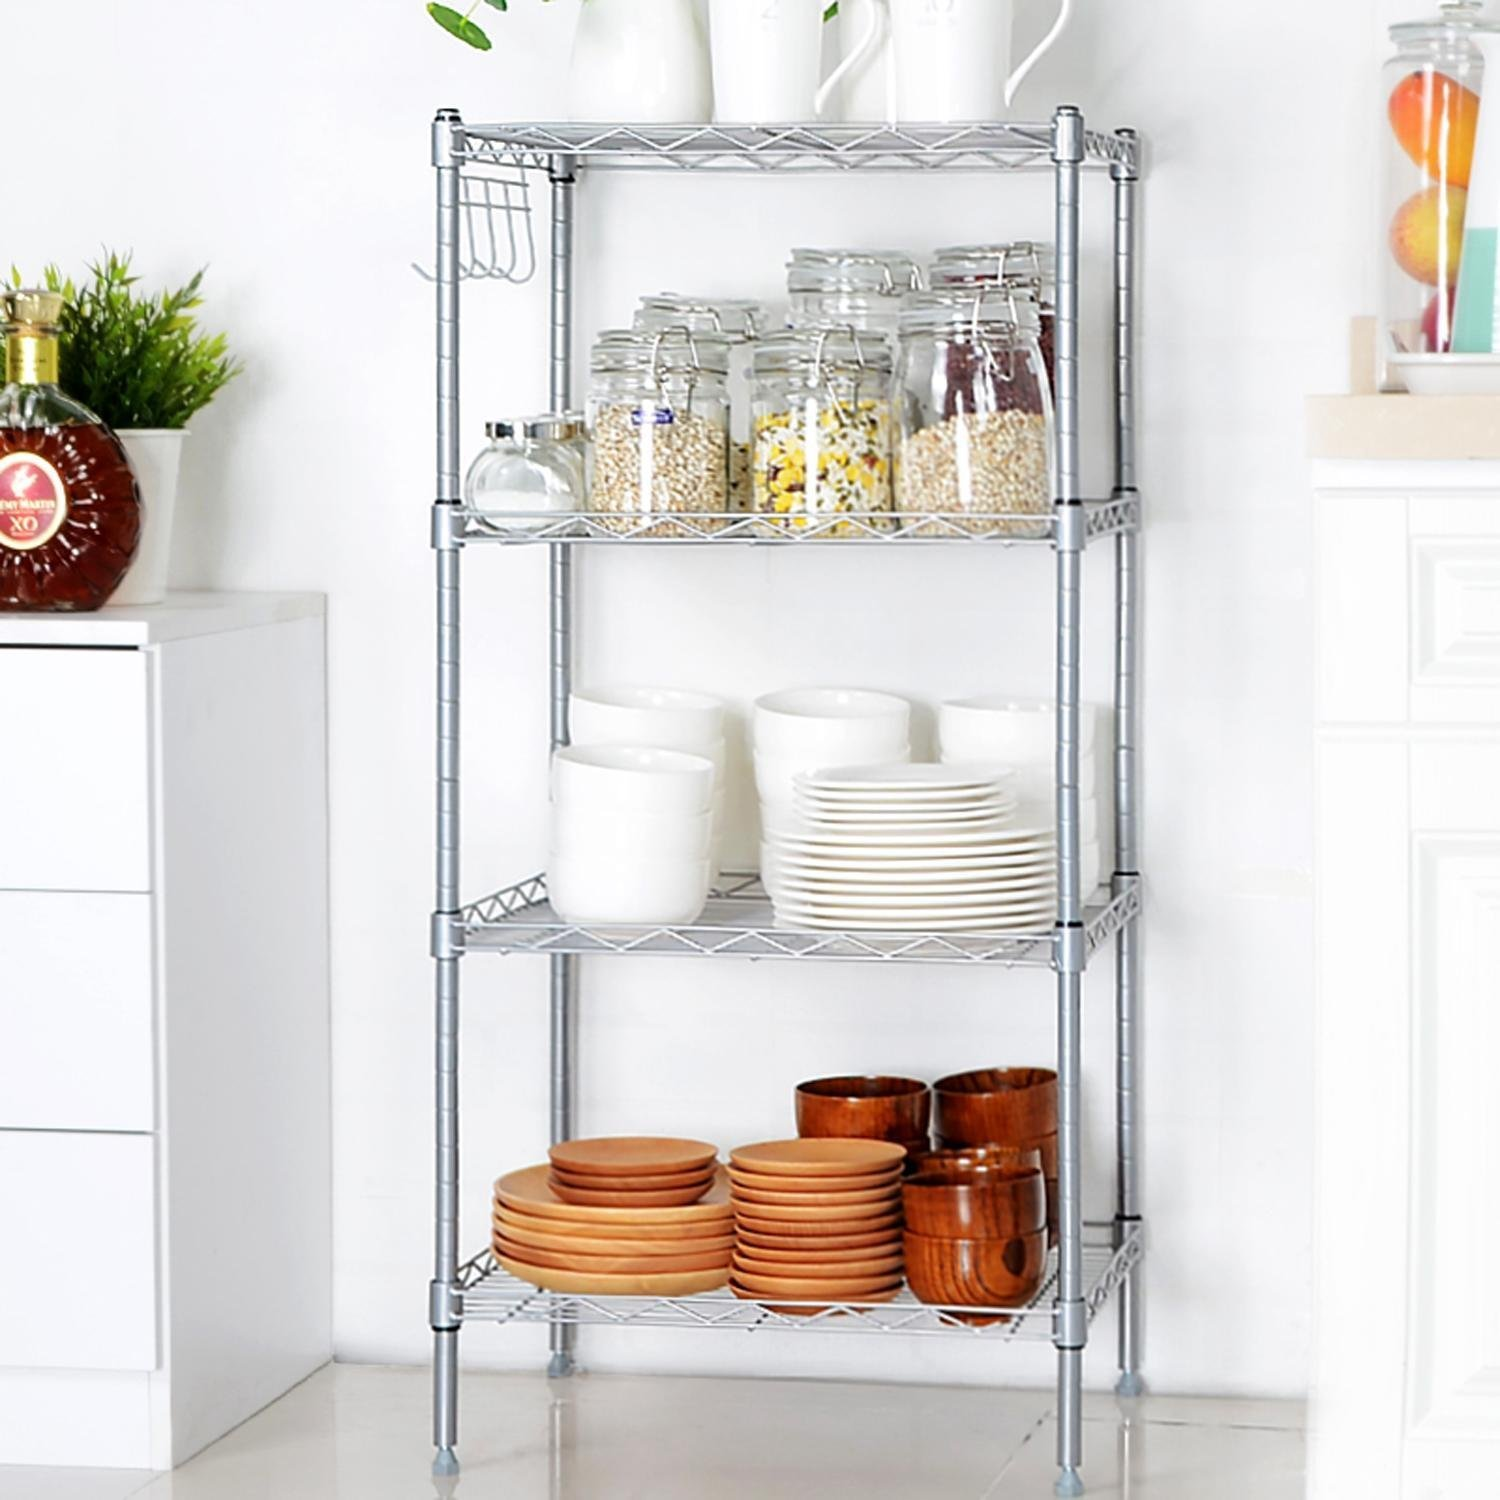 Meharbour 4-Tier Wire Shelving Unit, 4 Shelves Metal Wire Shelving Units Storage Rack for Kitchen Laundry Organization with Adjustable Leveling Feet & Side Hooks (US STOCK) (Silver Gray, 4-Tier)